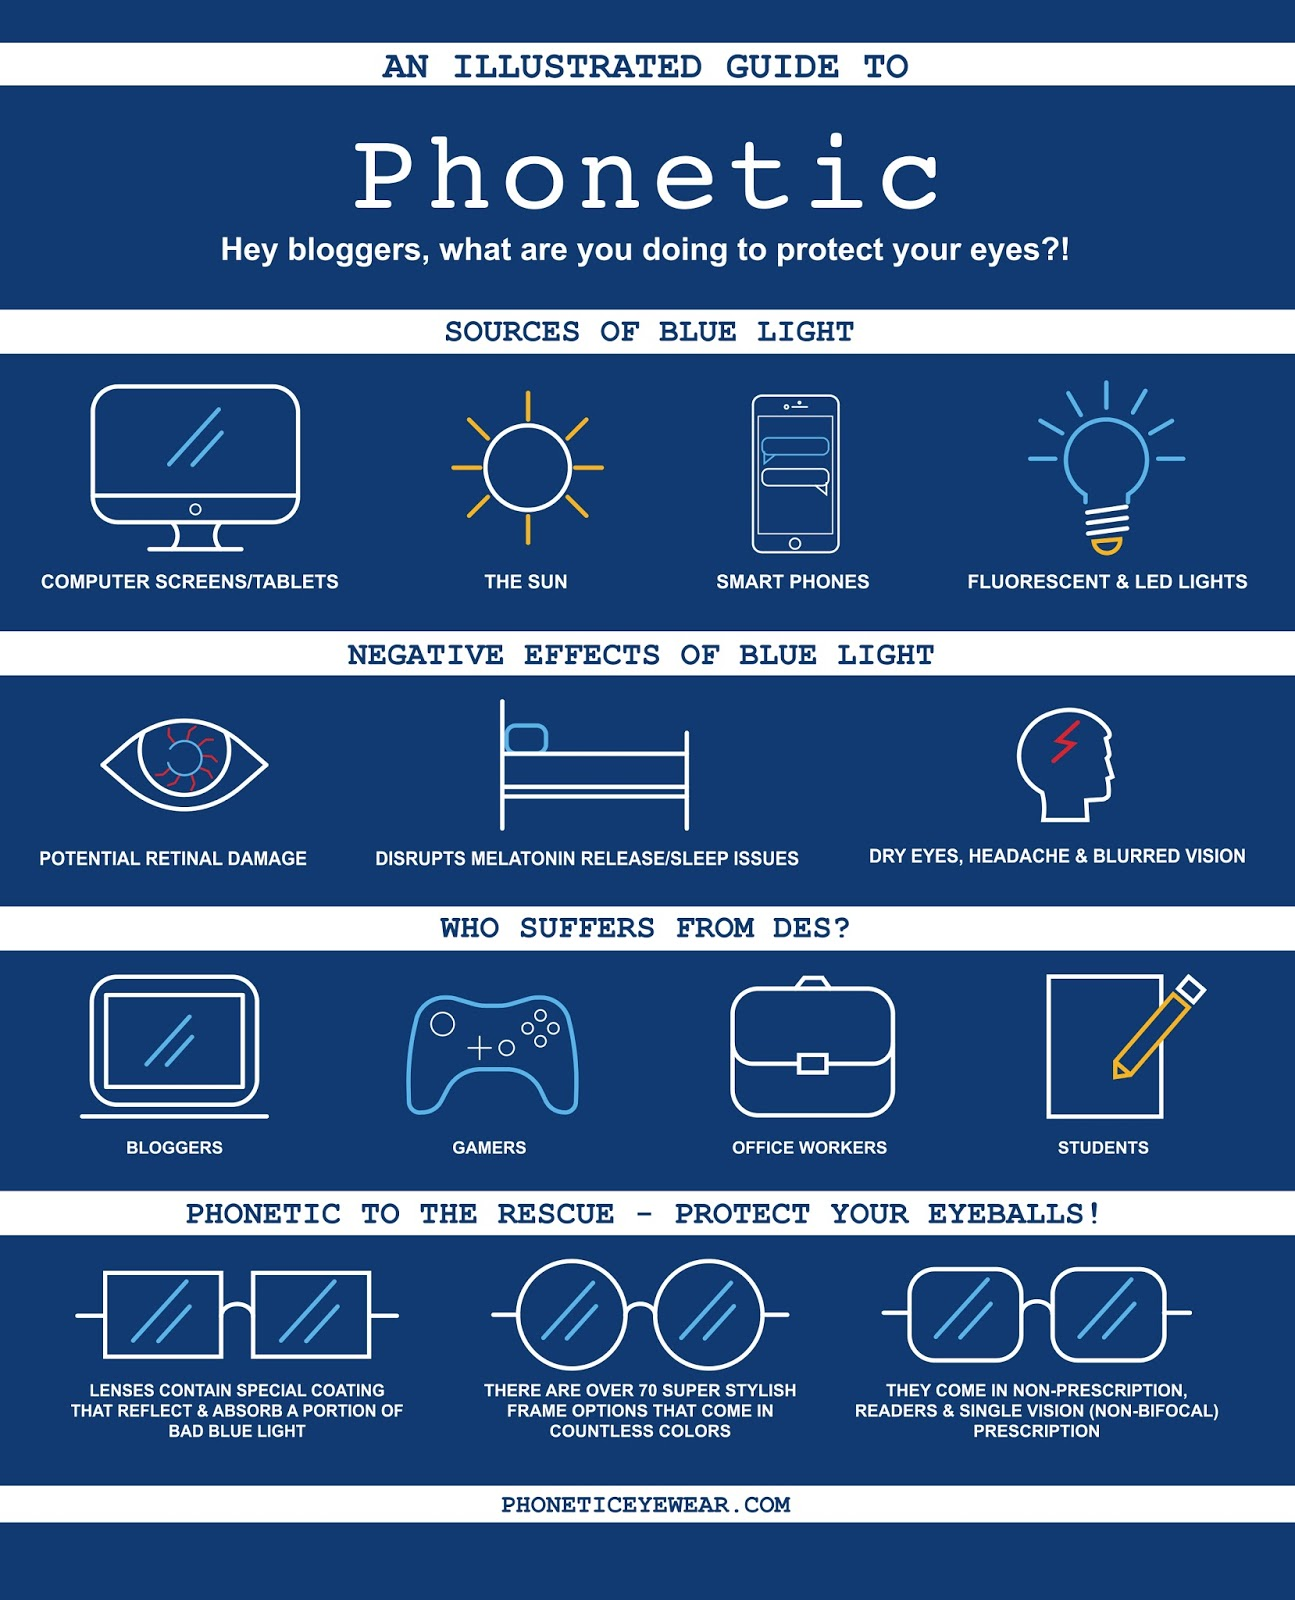 https://phoneticeyewear.com/about/about-phonetic